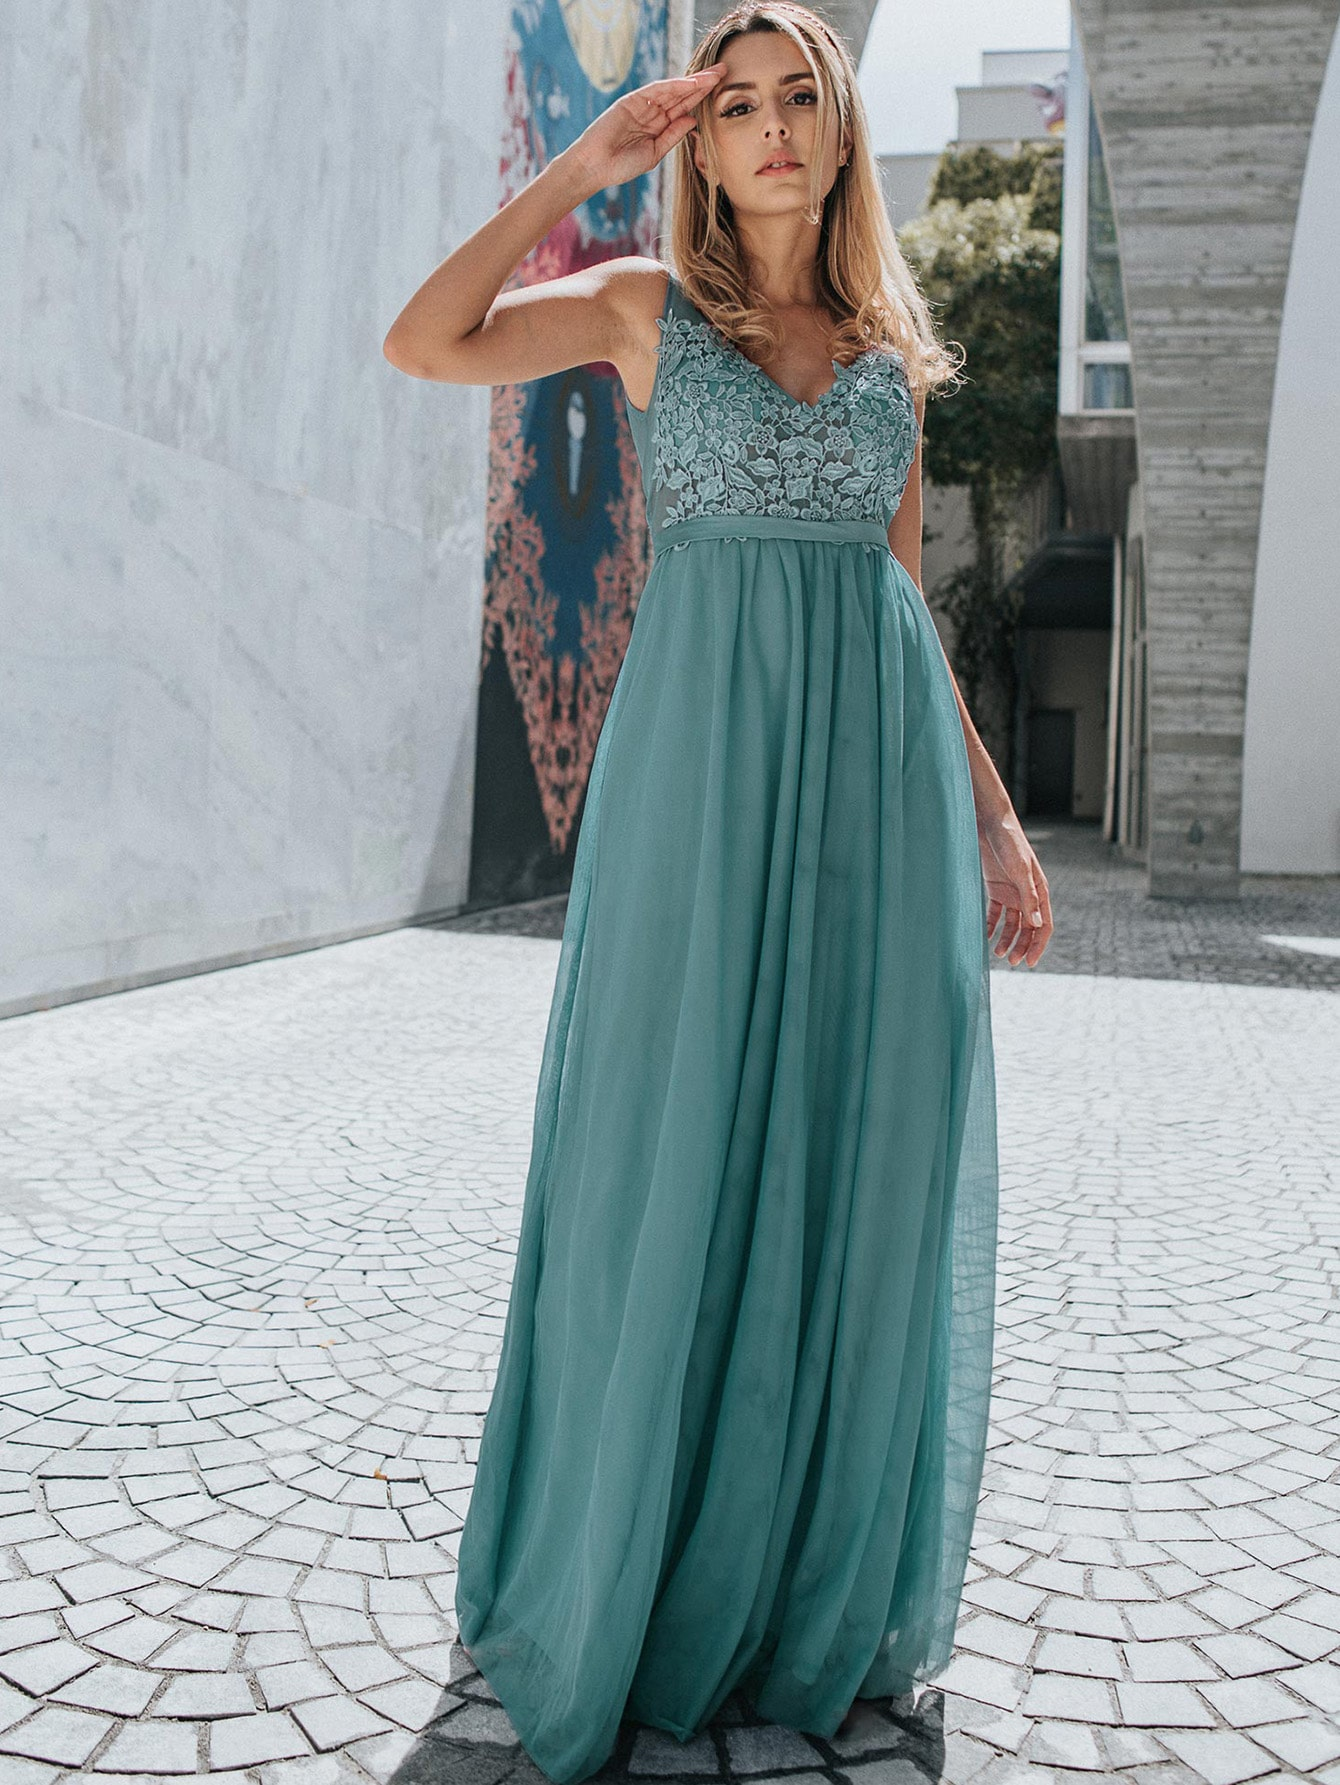 Floral Embroidery Appliques Mesh Prom Dress thumbnail